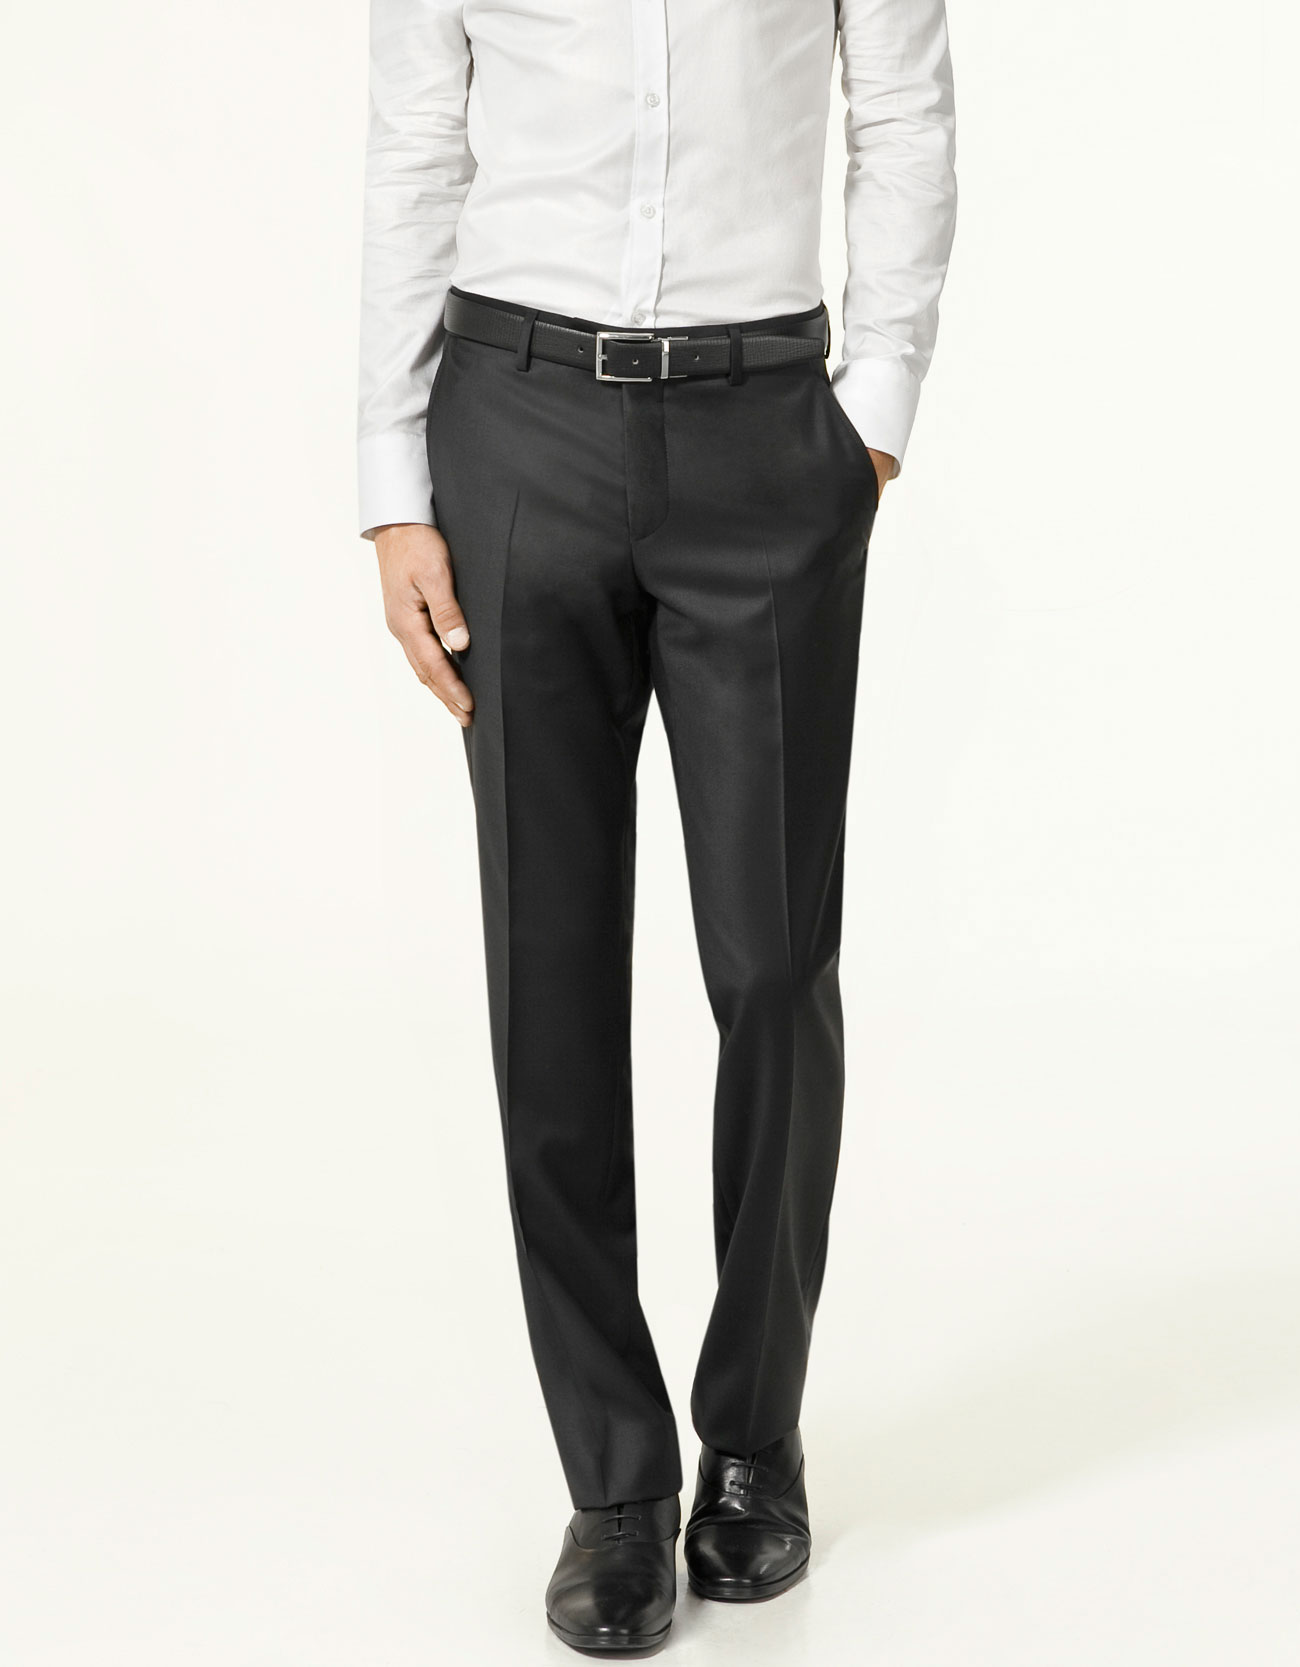 Zara Chinzato Formal Trousers In Black For Men | Lyst